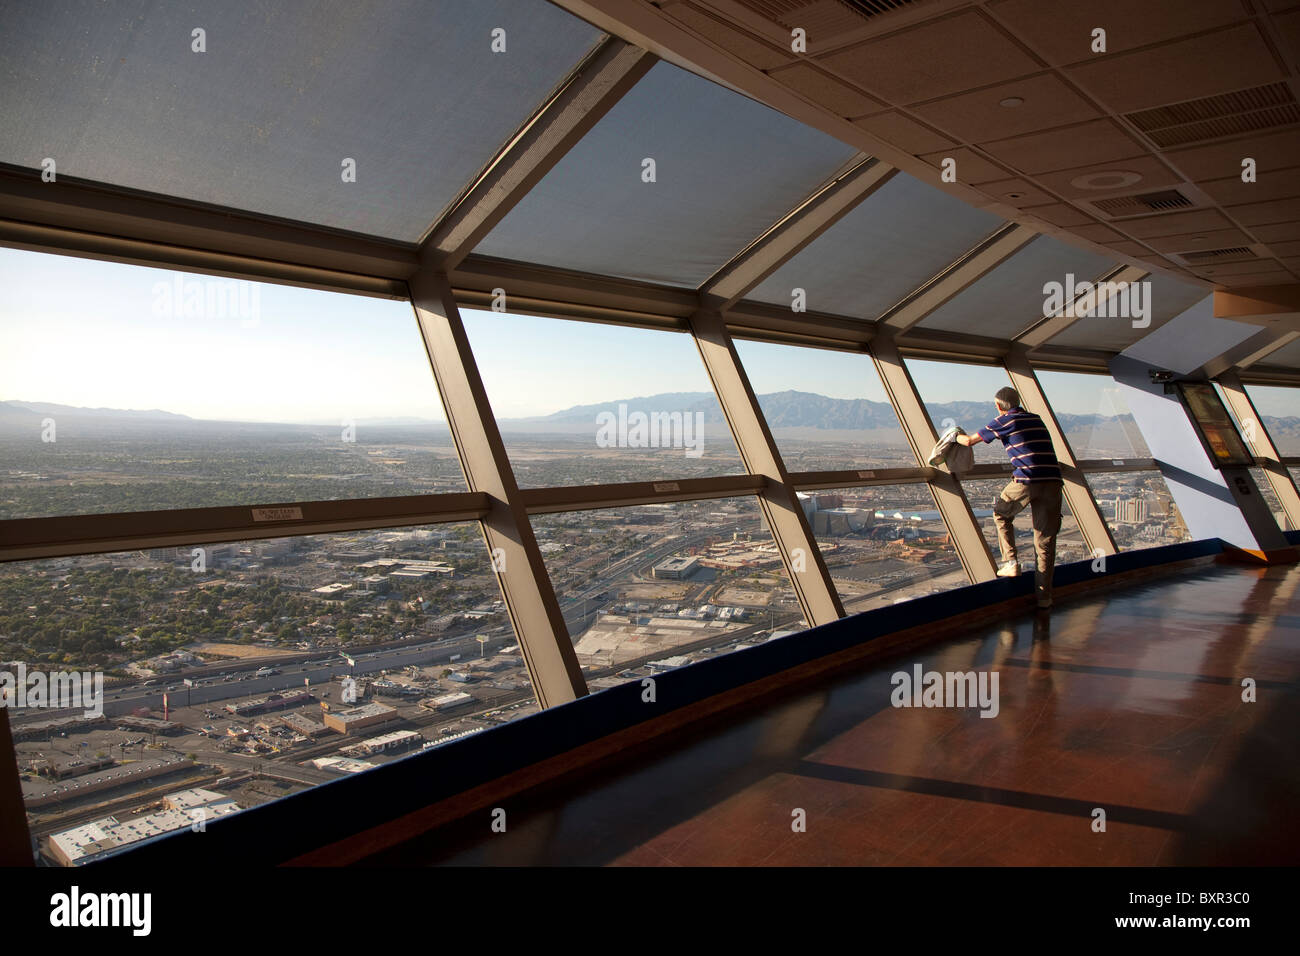 Sole tourist on the viewing deck at the top of the stratosphere tower in Las Vegas Nevada USA - Stock Image